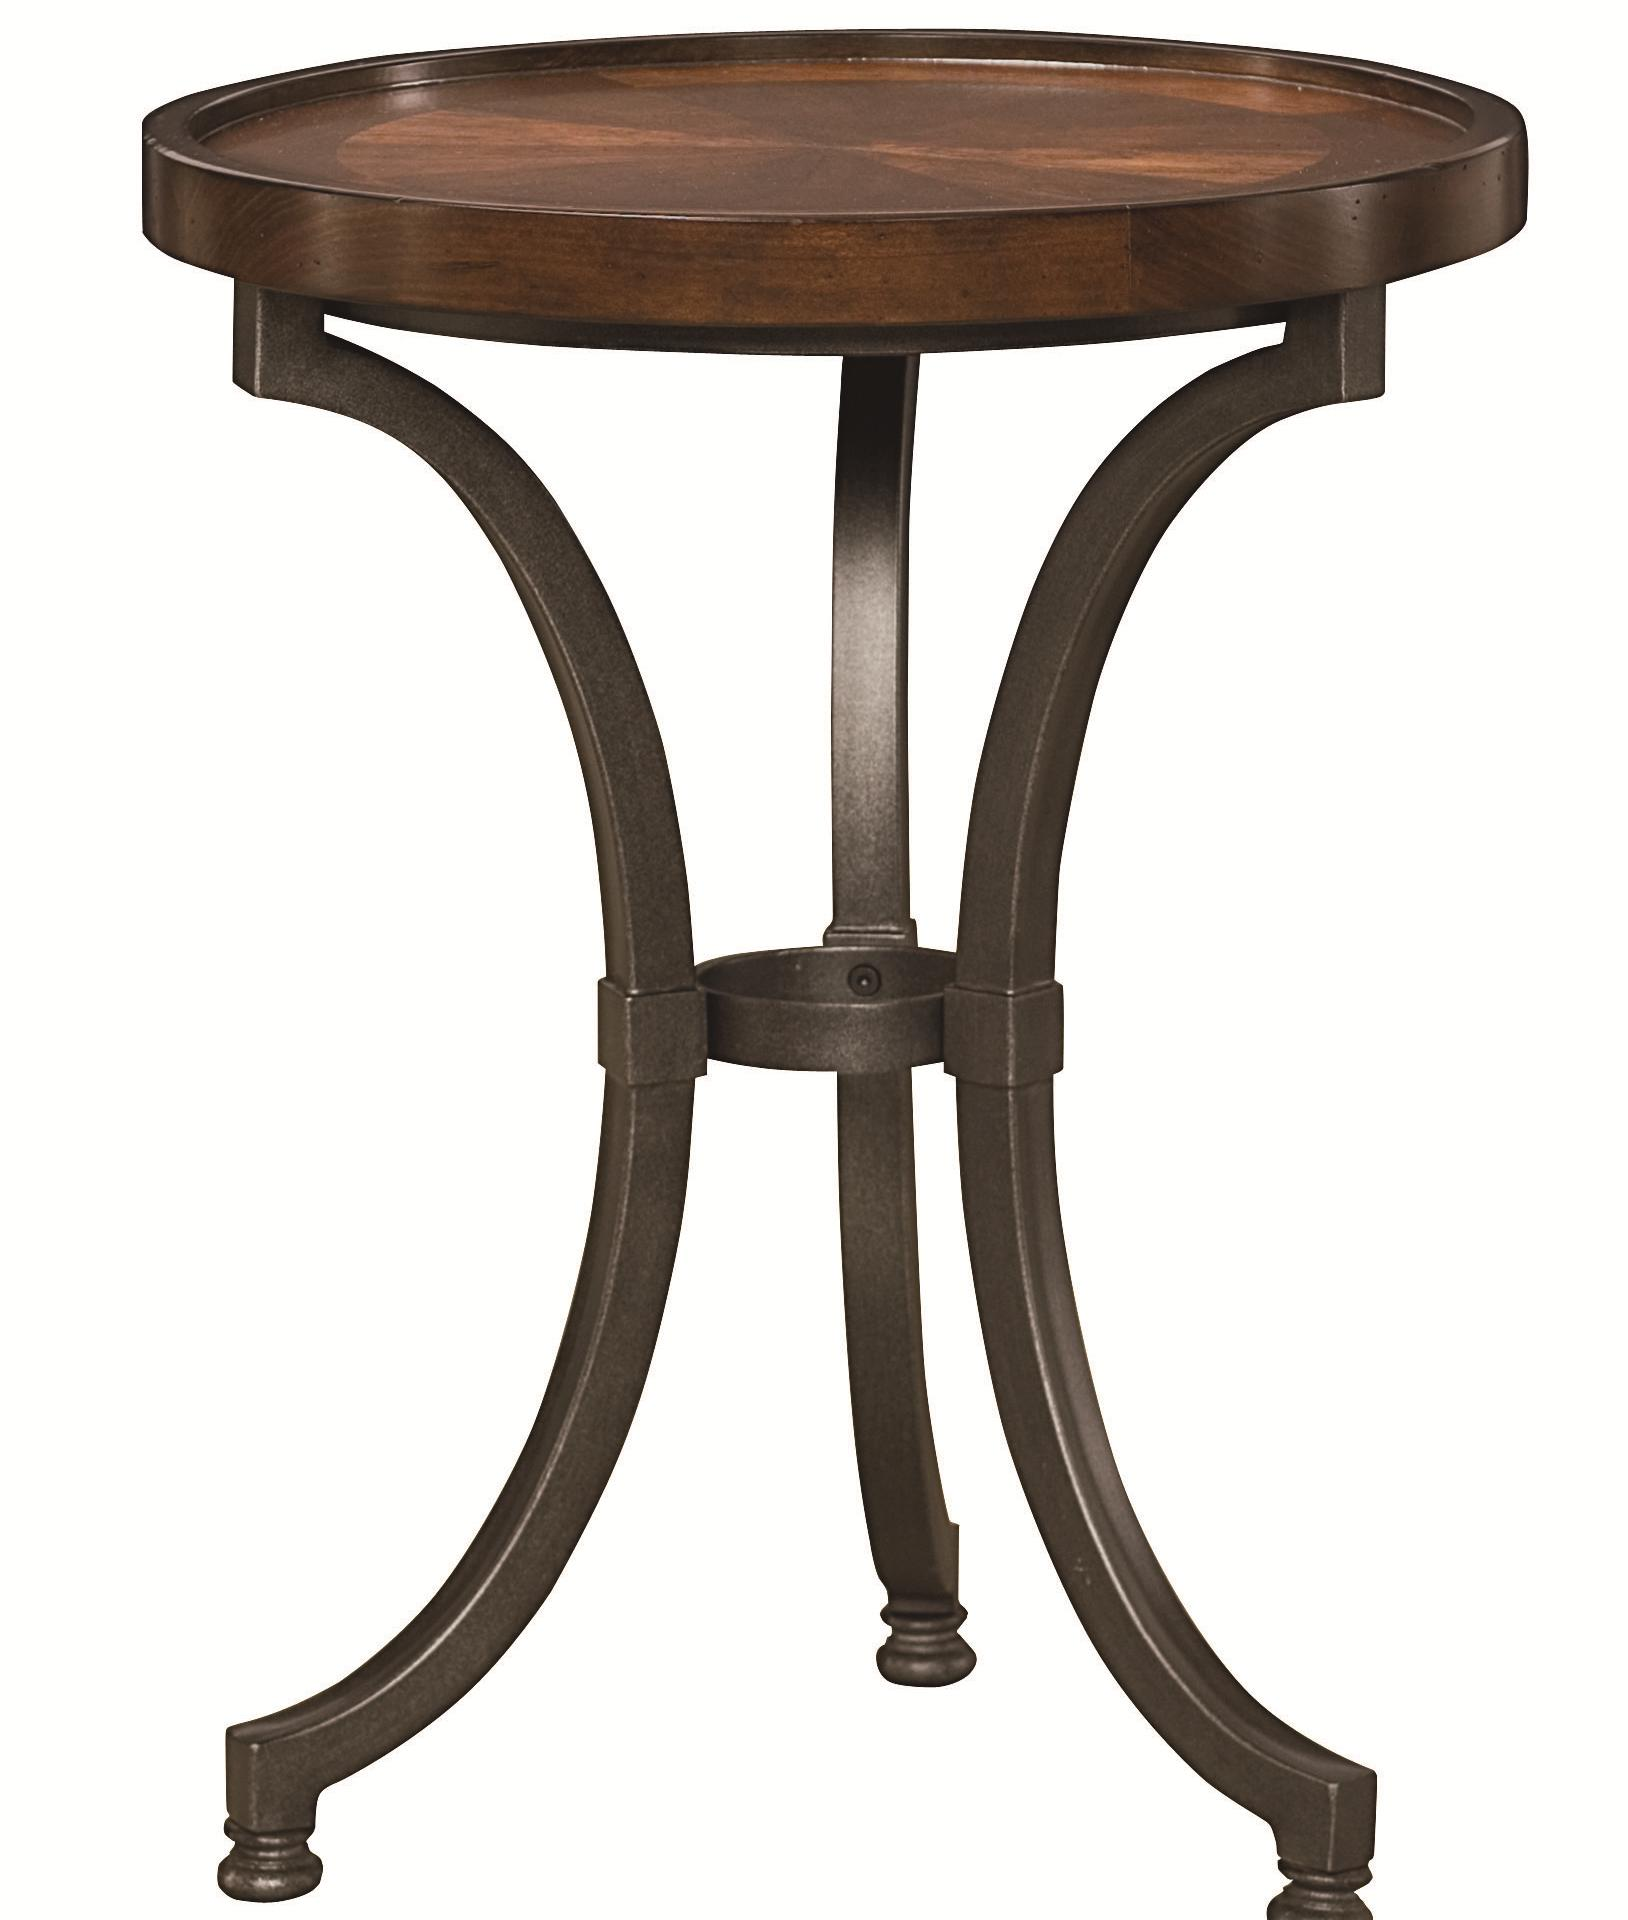 hammary barrow round chairside table with metal base wayside products color top accent glass nesting coffee tables threshold rustic country trestle very small nest jcpenney bag